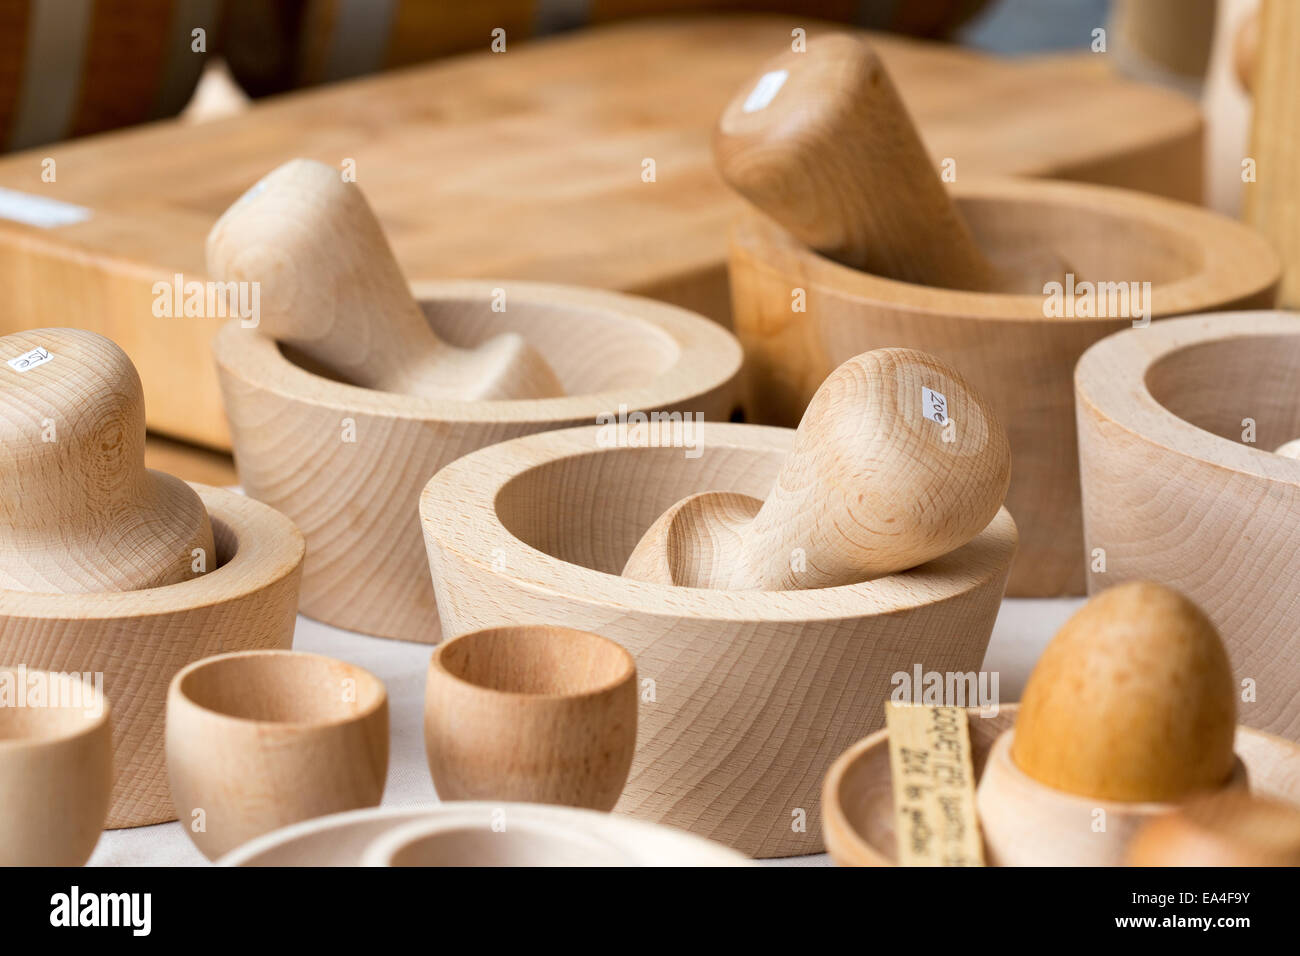 Brilliant Wooden Mortar Pestle And Other Wooden Handmade Kitchen Download Free Architecture Designs Grimeyleaguecom